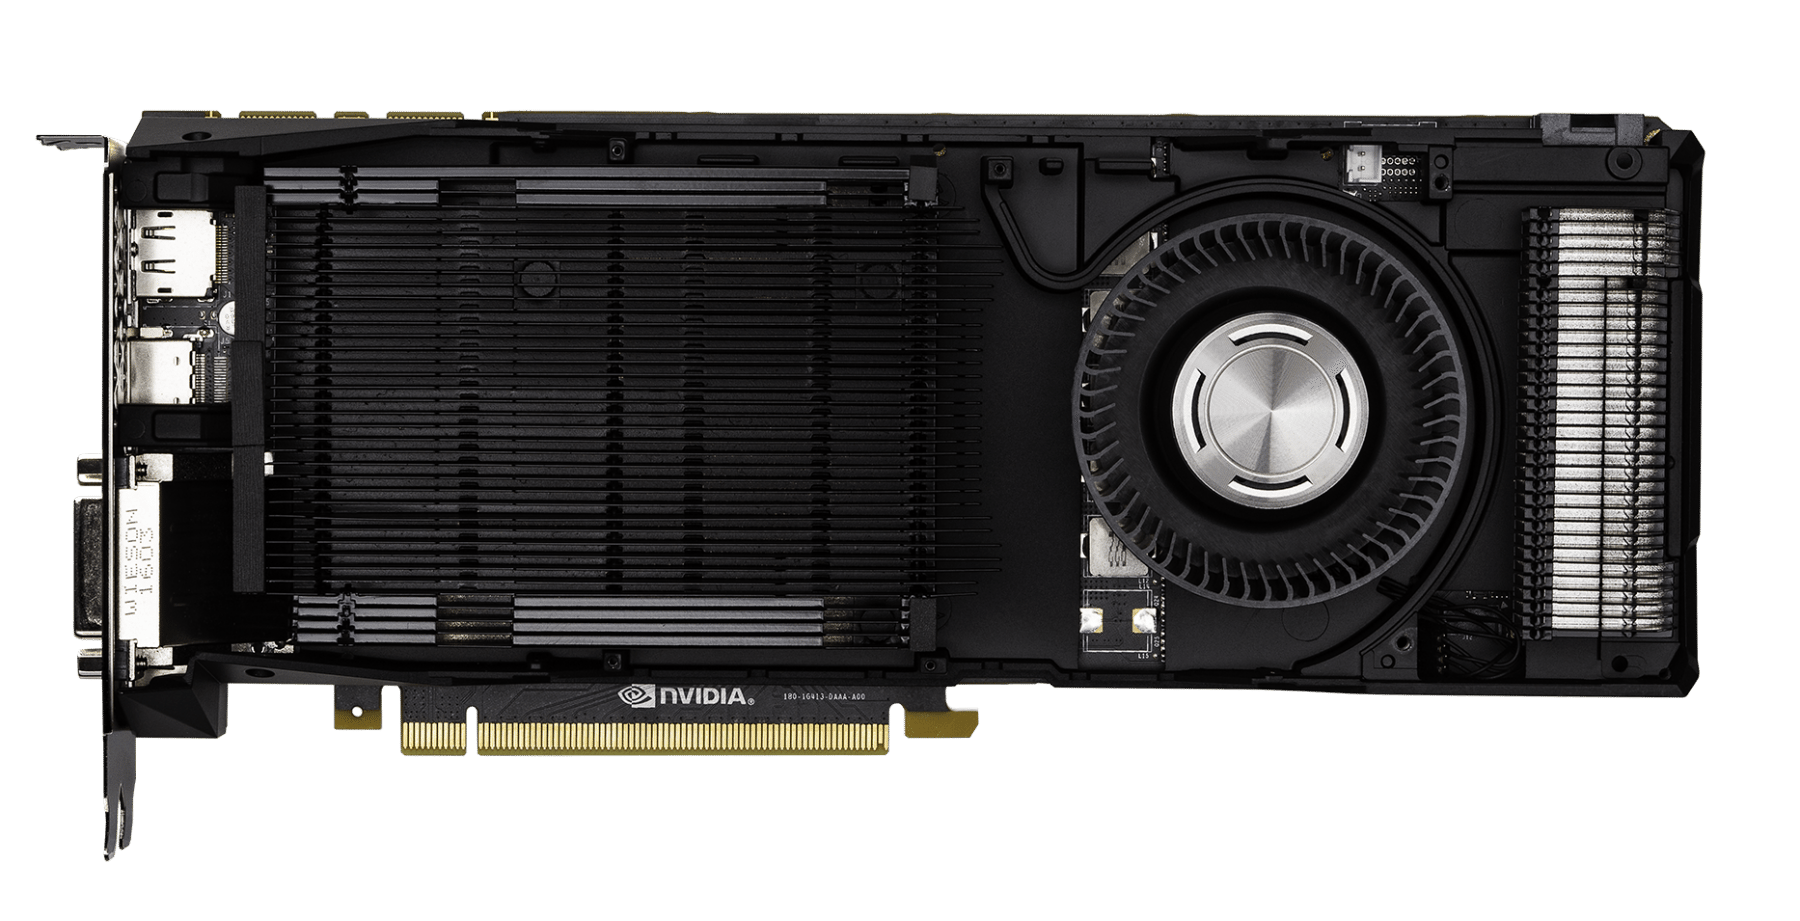 nvidia-geforce-gtx-1080-internal-Front_Thermal-b